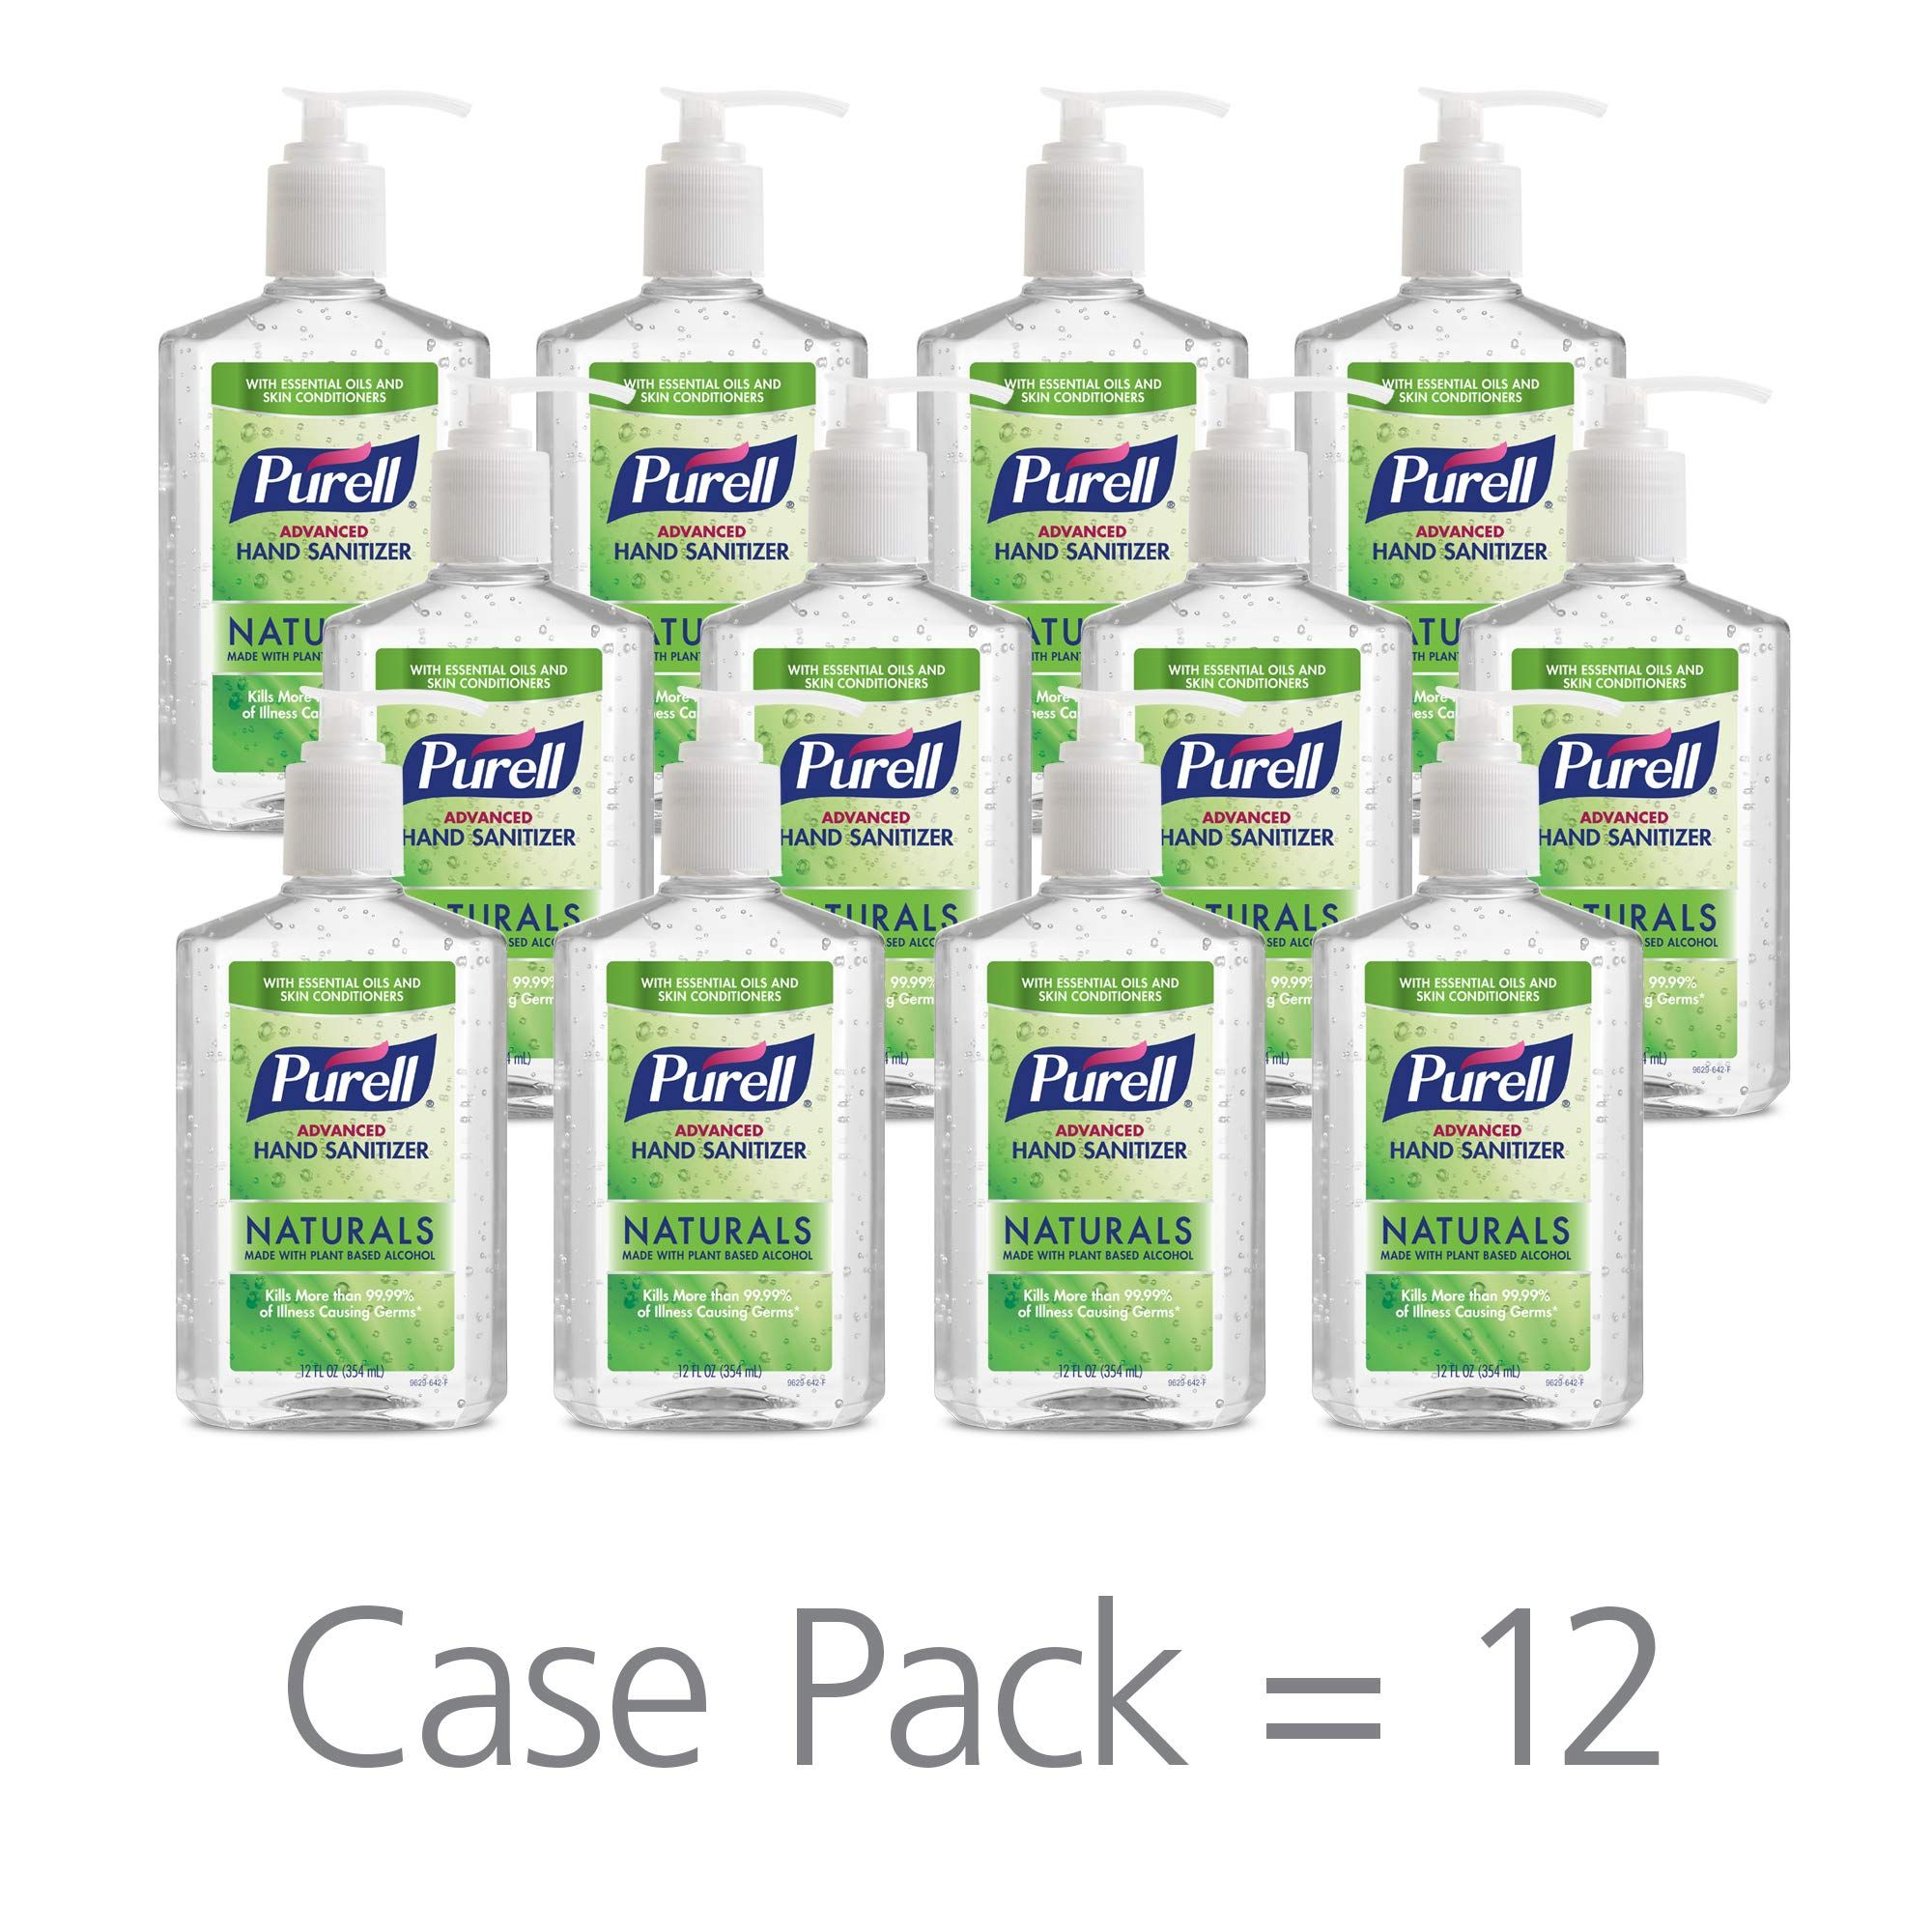 Purell Naturals Advanced Hand Sanitizer Gel With Skin